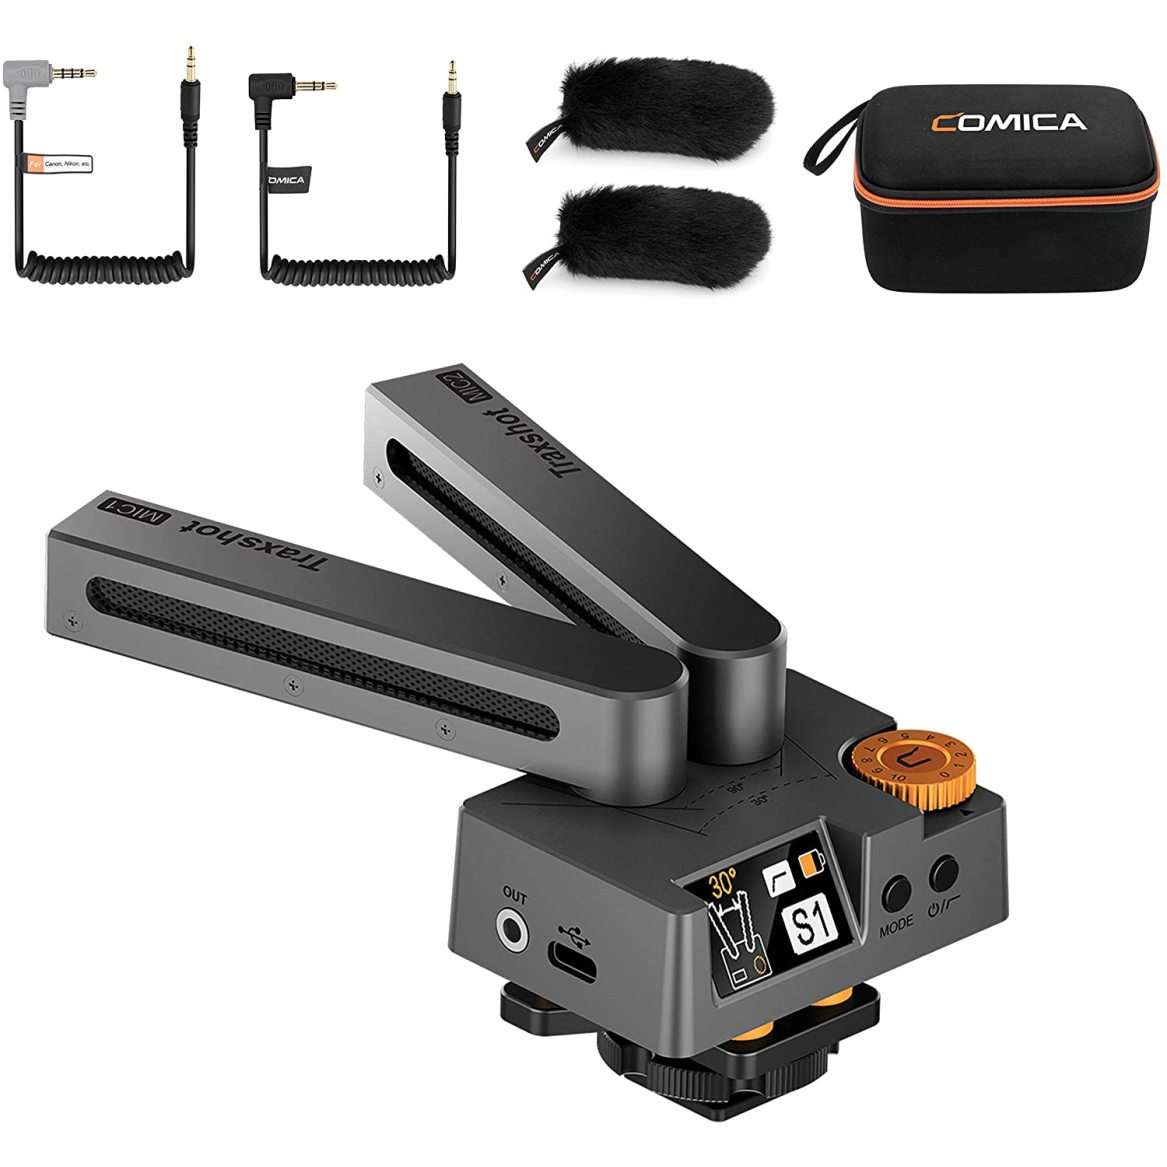 Vloggears Comica Traxshot  Video Microphone